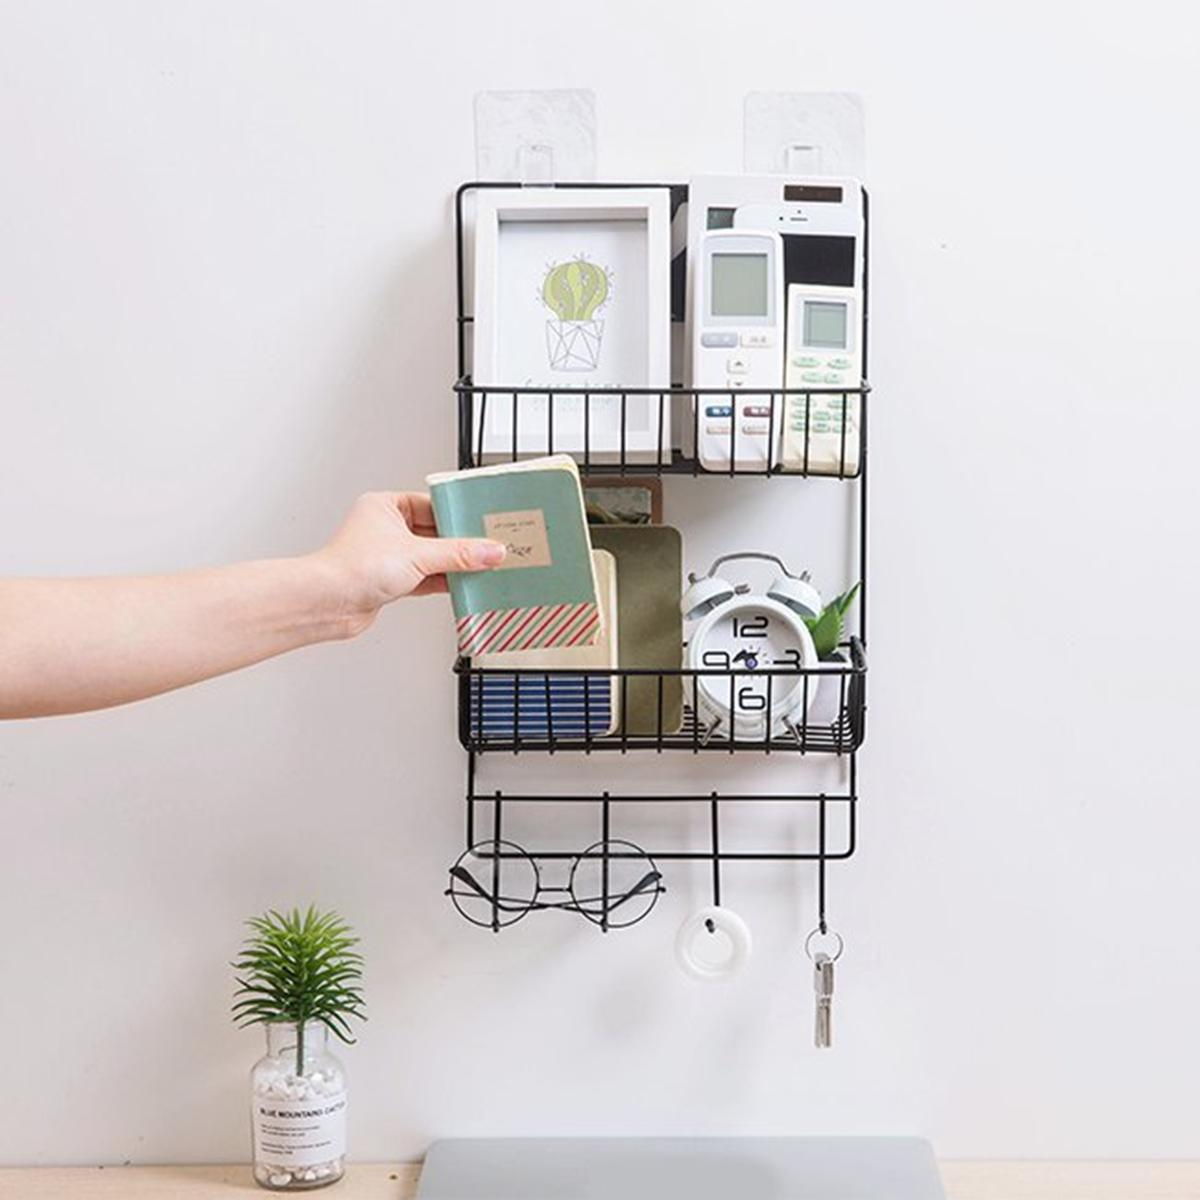 competitive price 6a04f e0afa 2 Layers Adhesive Wall Shelf Iron Keys Hanging Storage Rack Home Door  Organizer